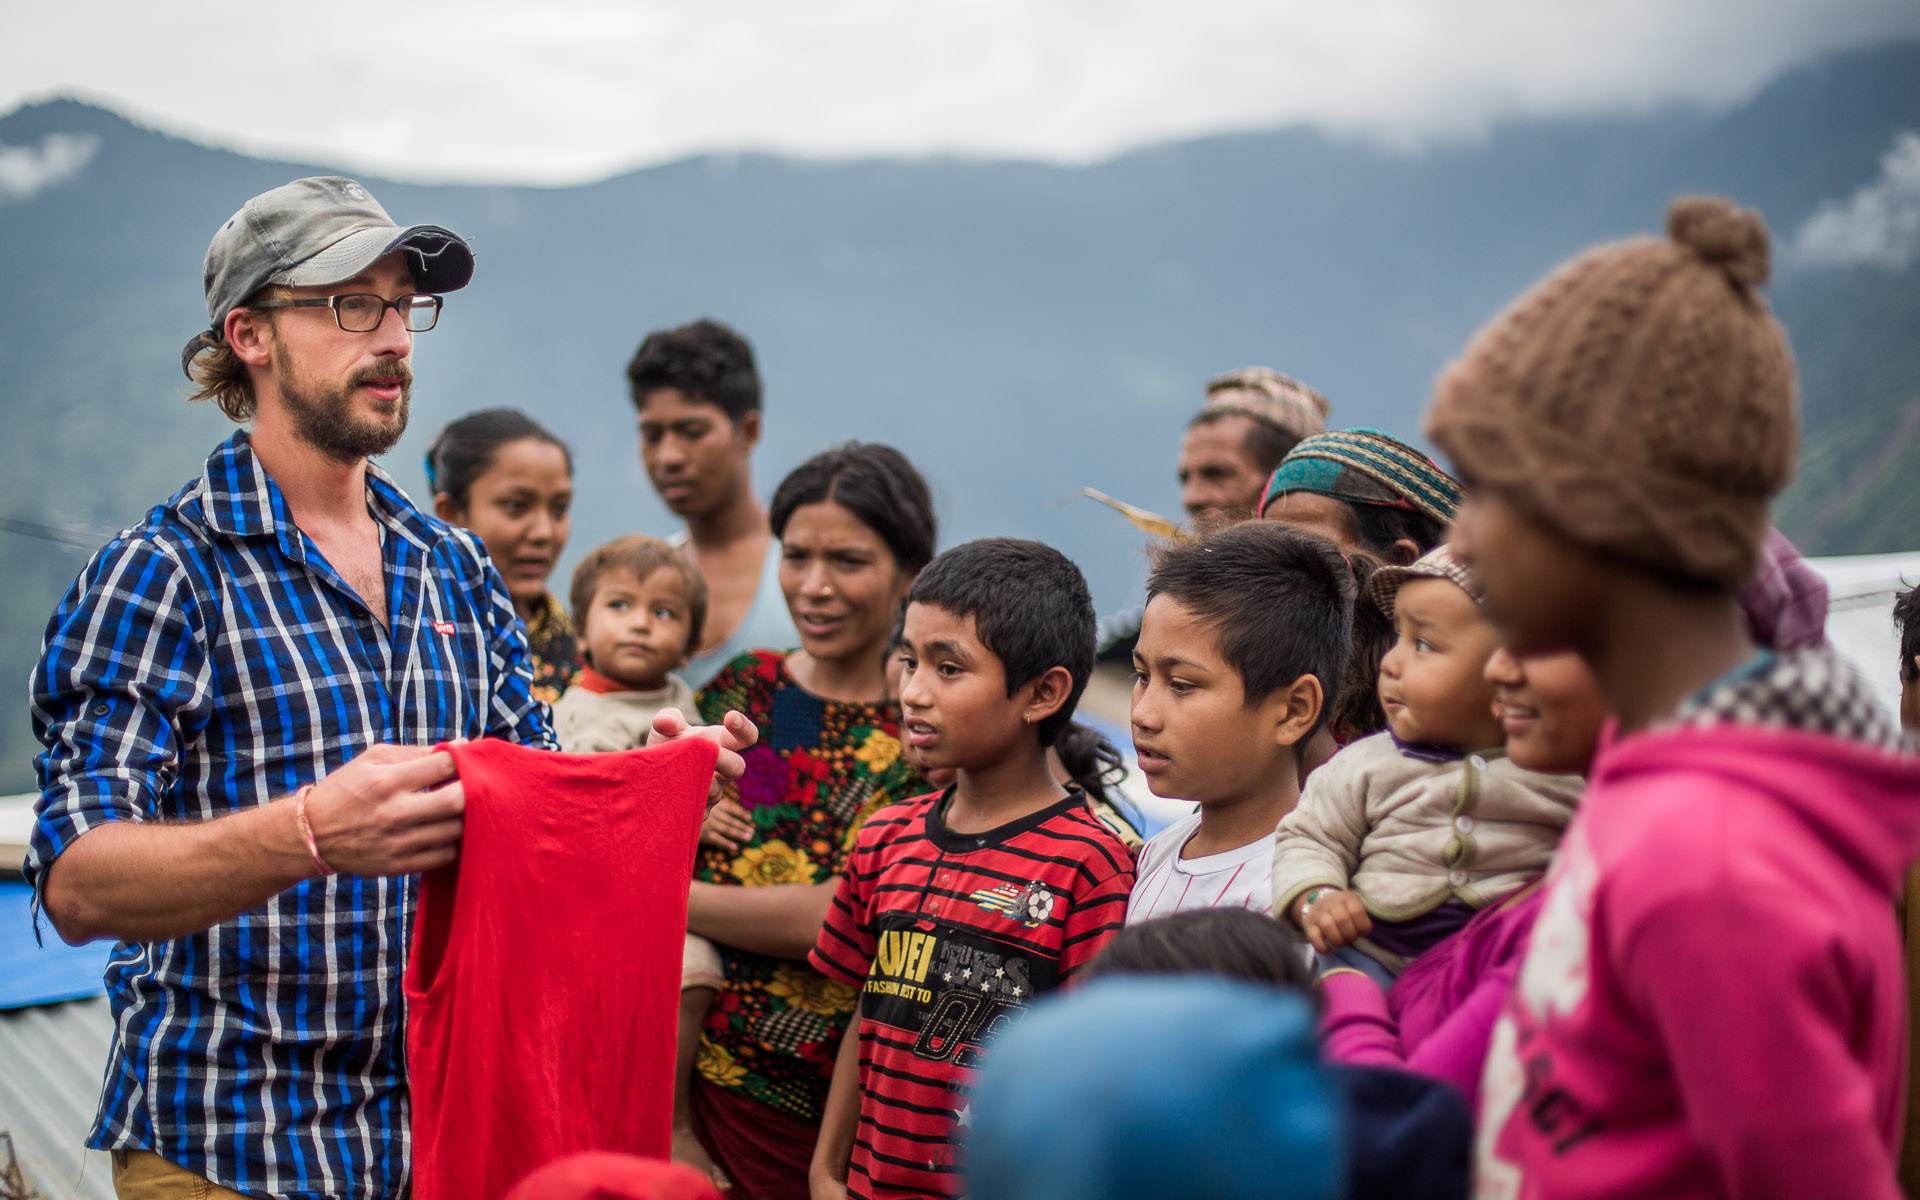 Handing over clothing to a surprised group of Dalit (Untouchable) people in Barpak.